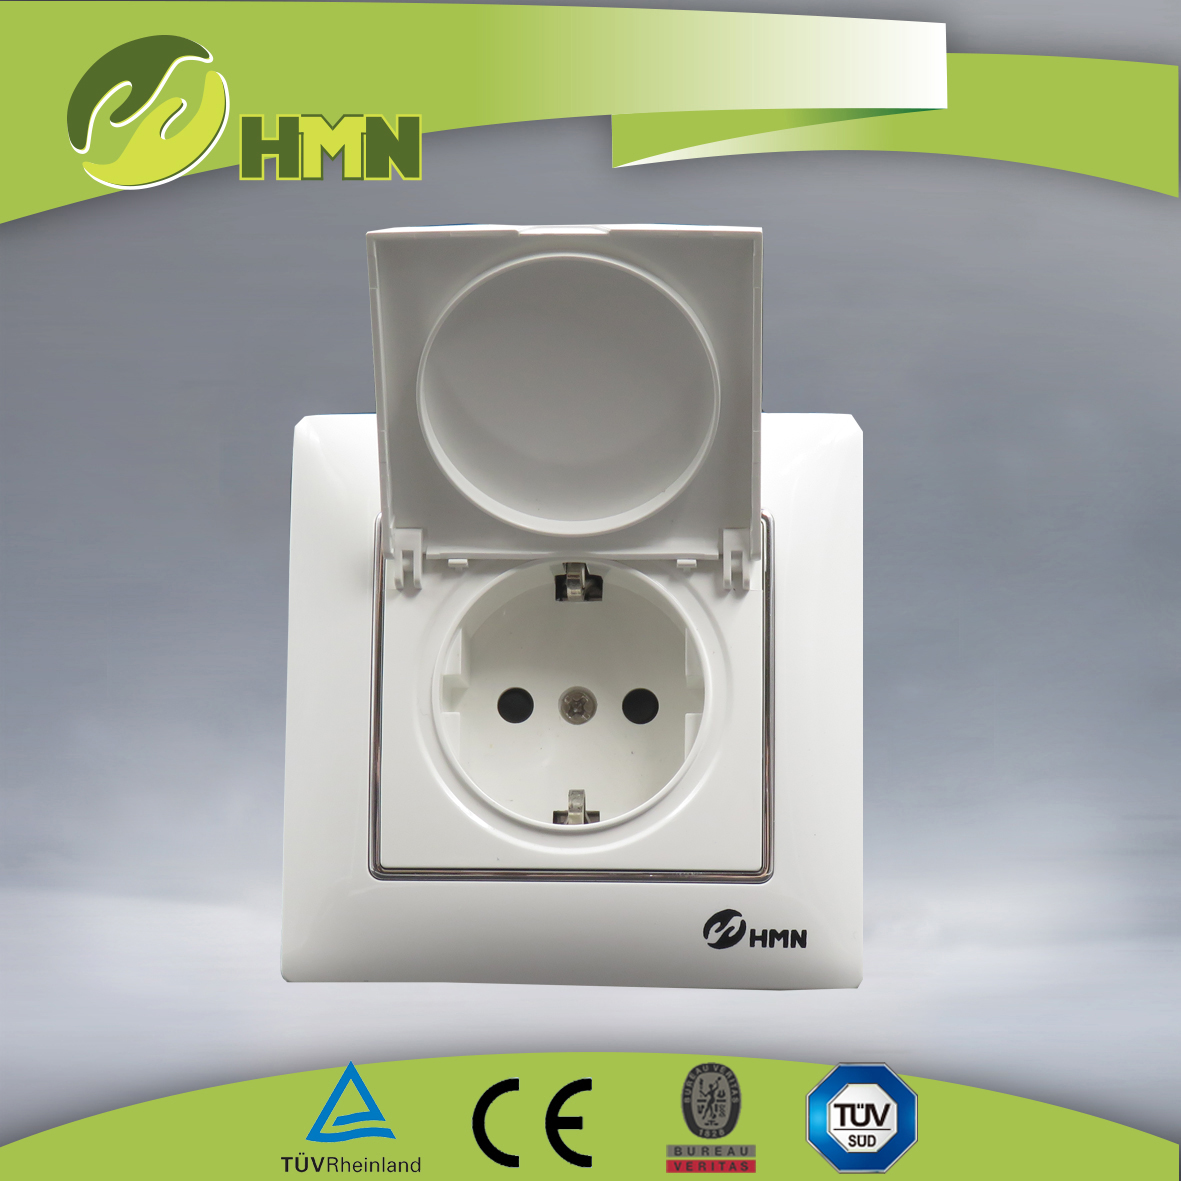 VC159 1 gang dust cover schuko socket